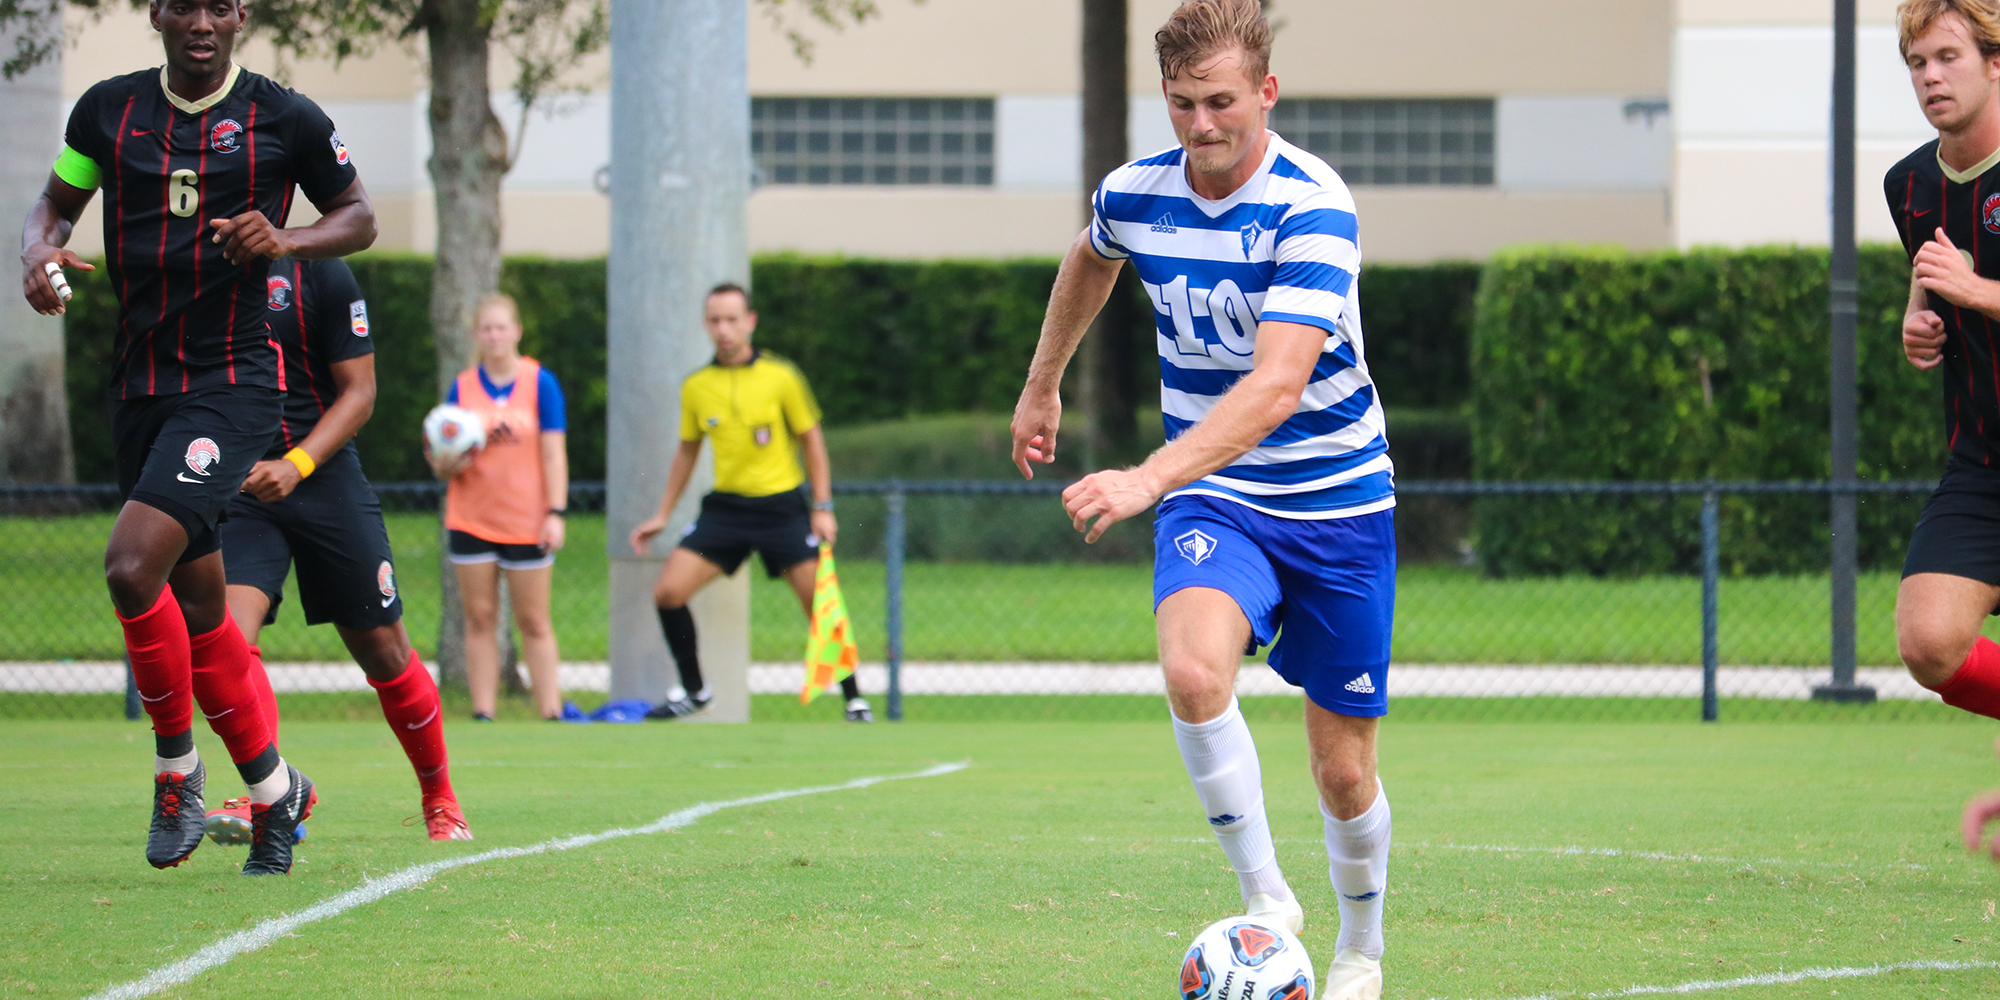 Sandmann Puts Tampa to Bed in Men's Soccer Victory